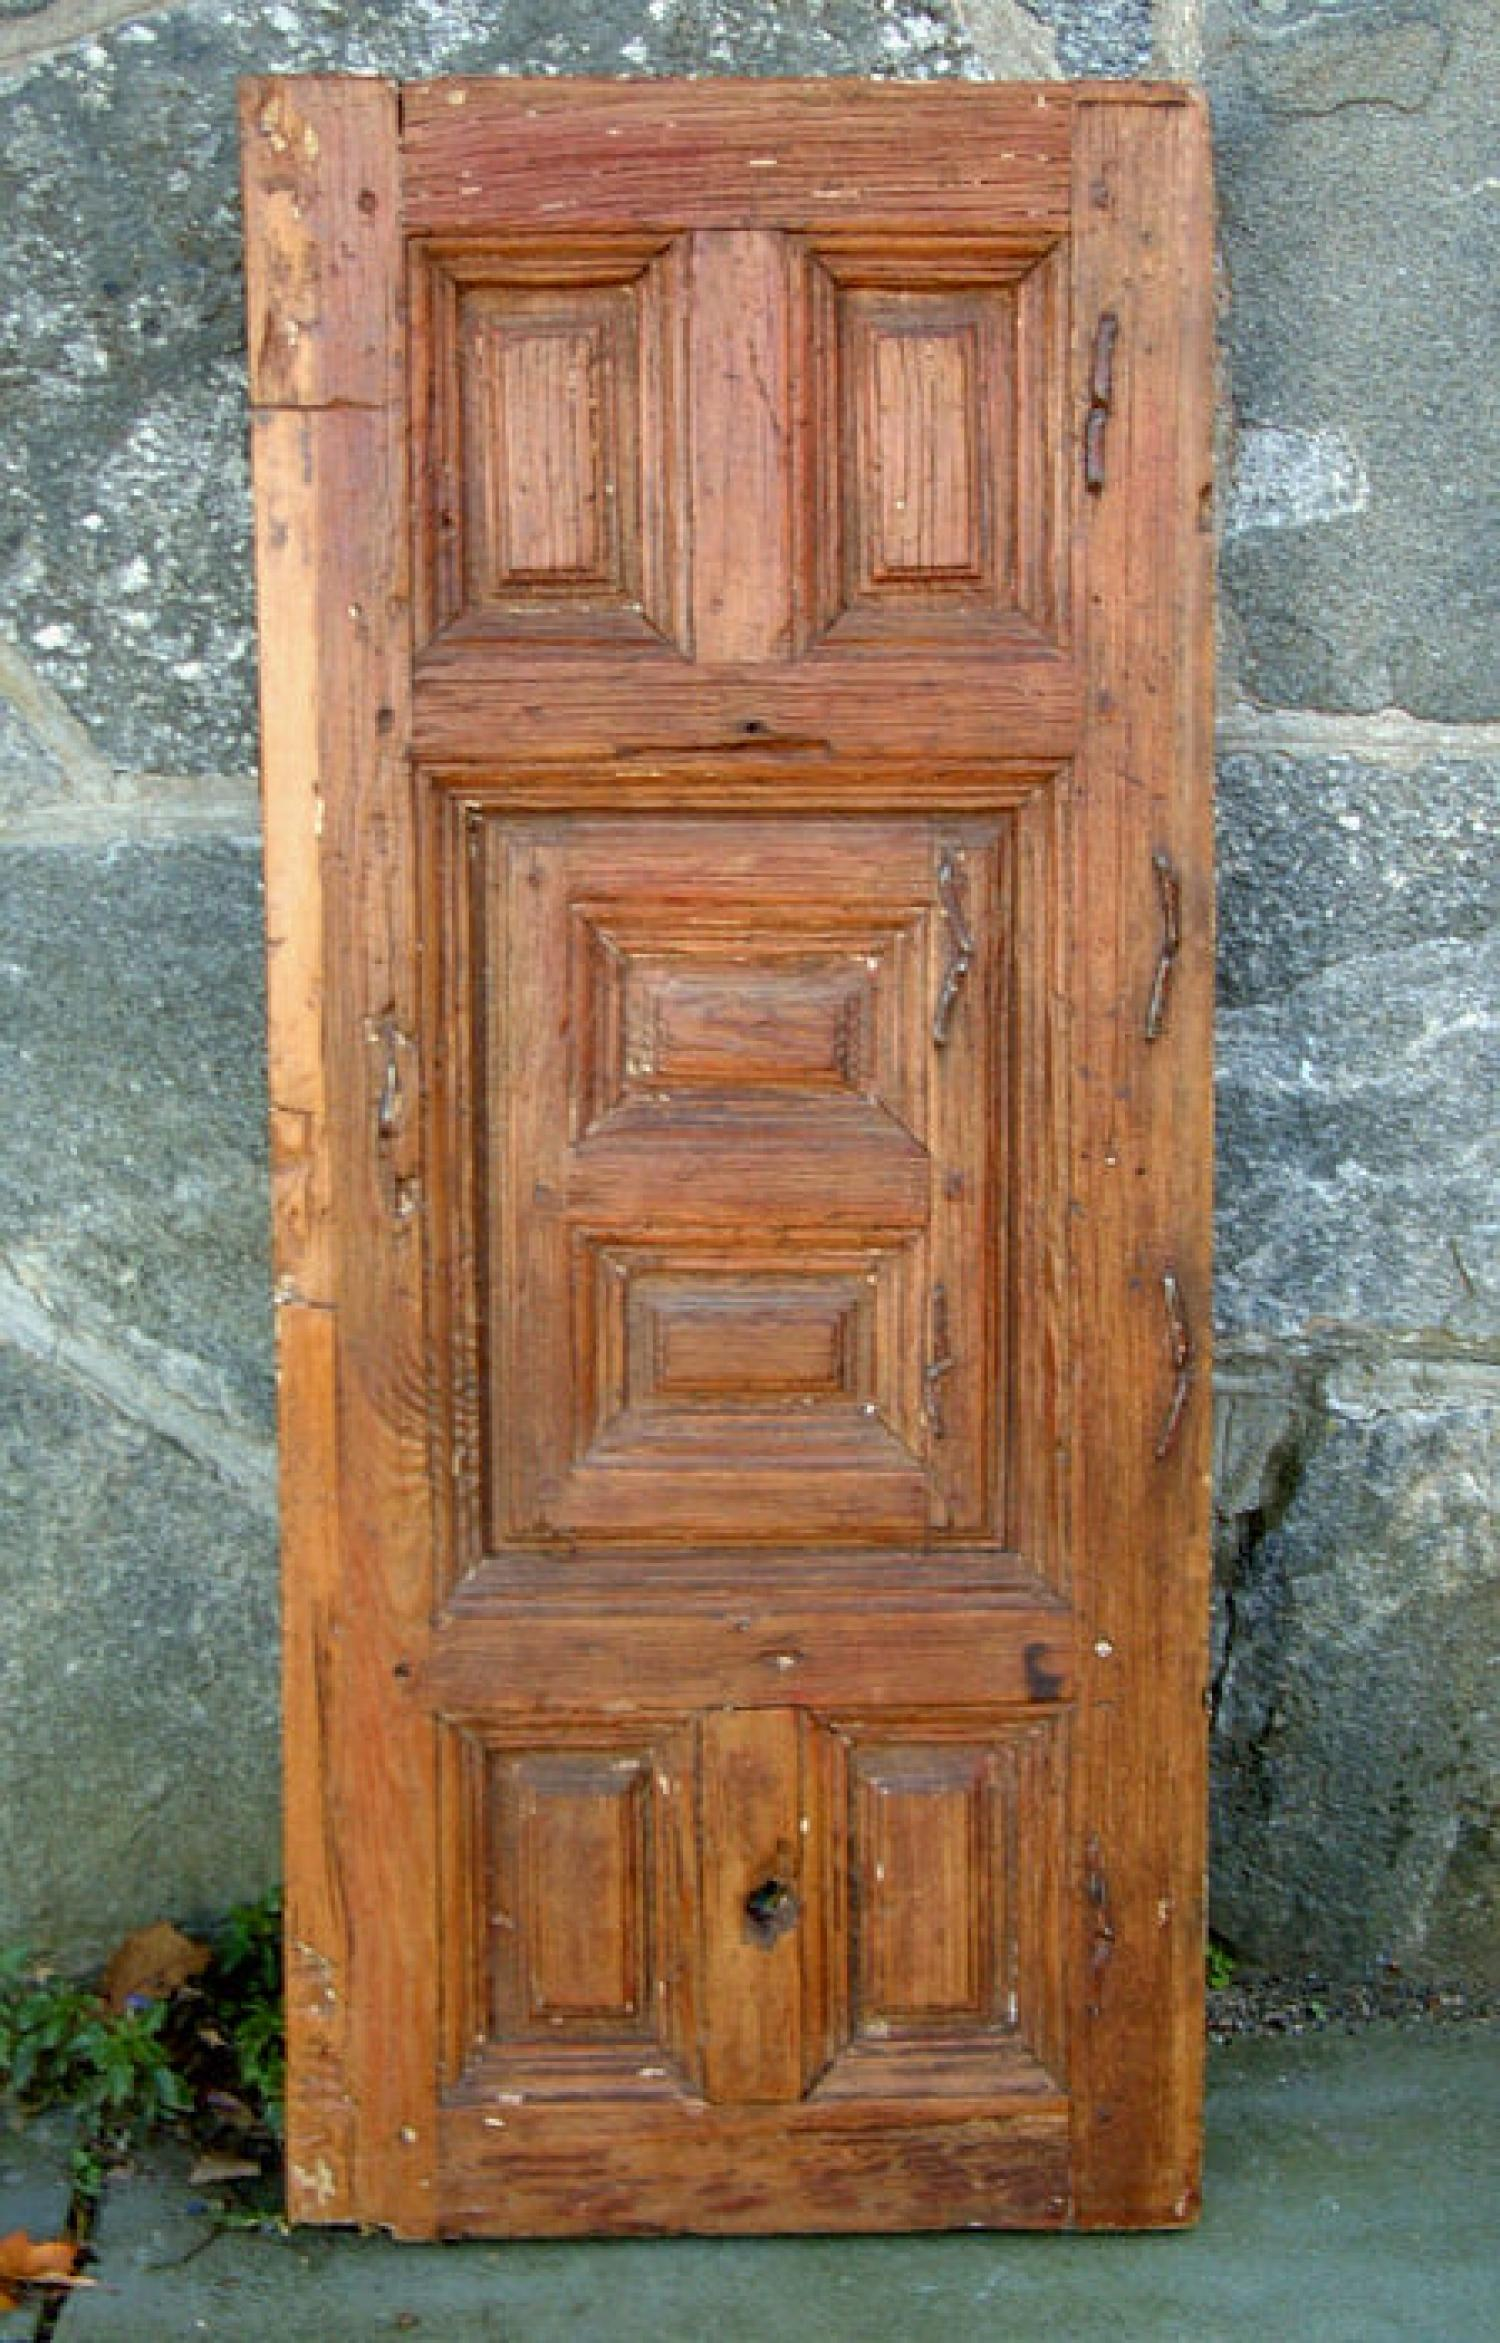 Antique 16th to mid 17th Century Wood confessional Door